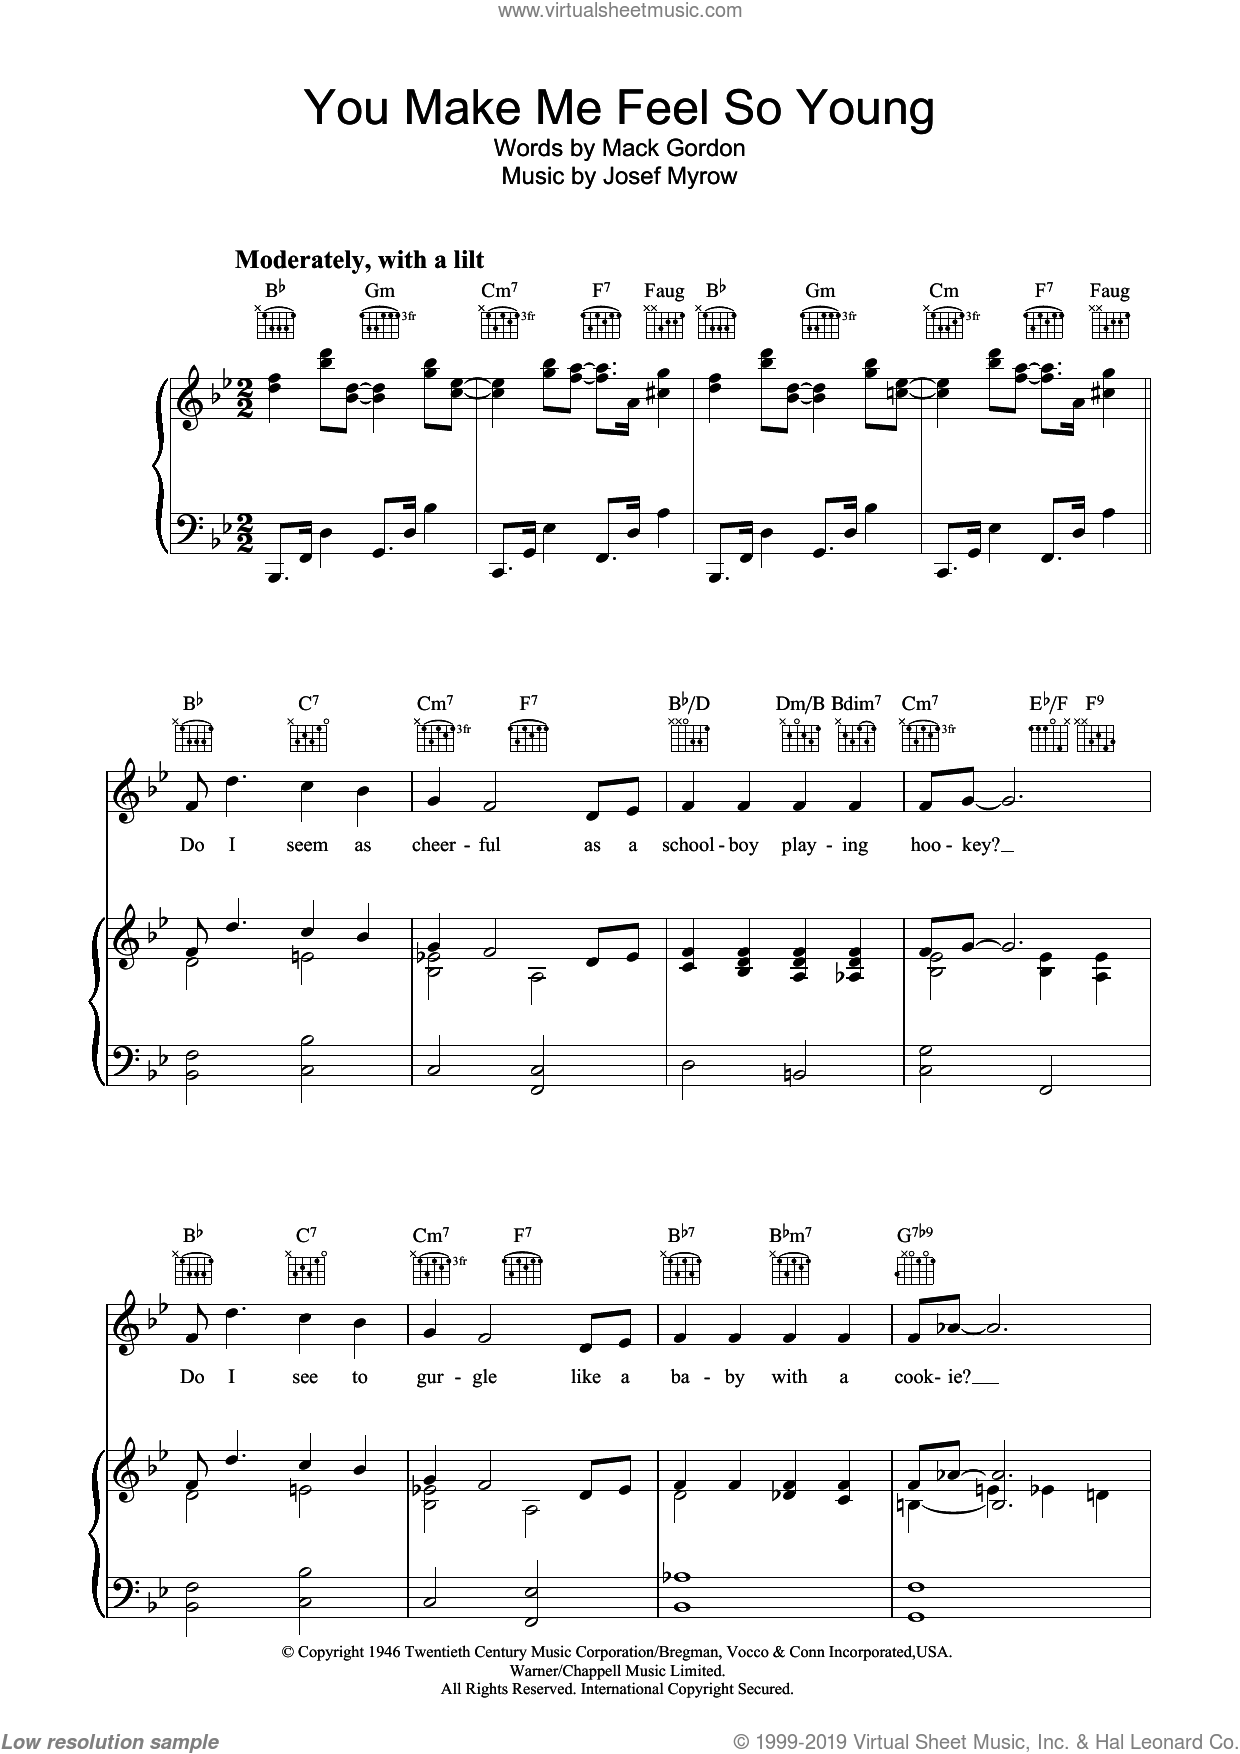 You Make Me Feel So Young sheet music for voice, piano or guitar by Frank Sinatra, Josef Myrow and Mack Gordon, intermediate skill level